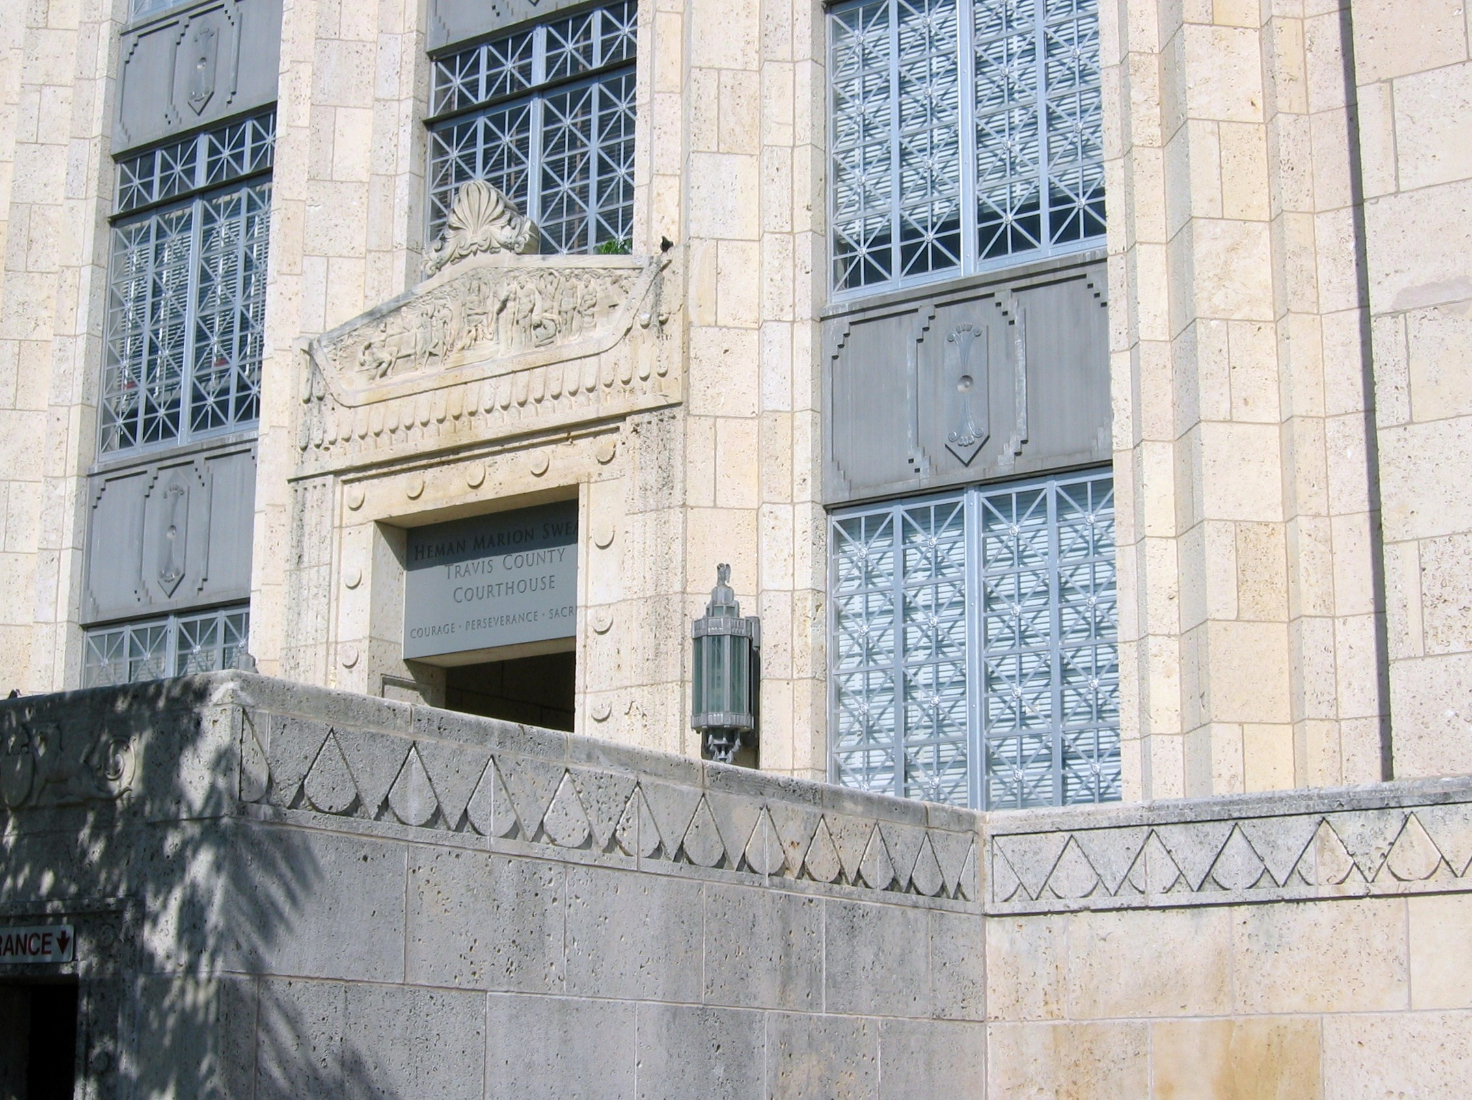 Fullsize Of Travis County Courthouse